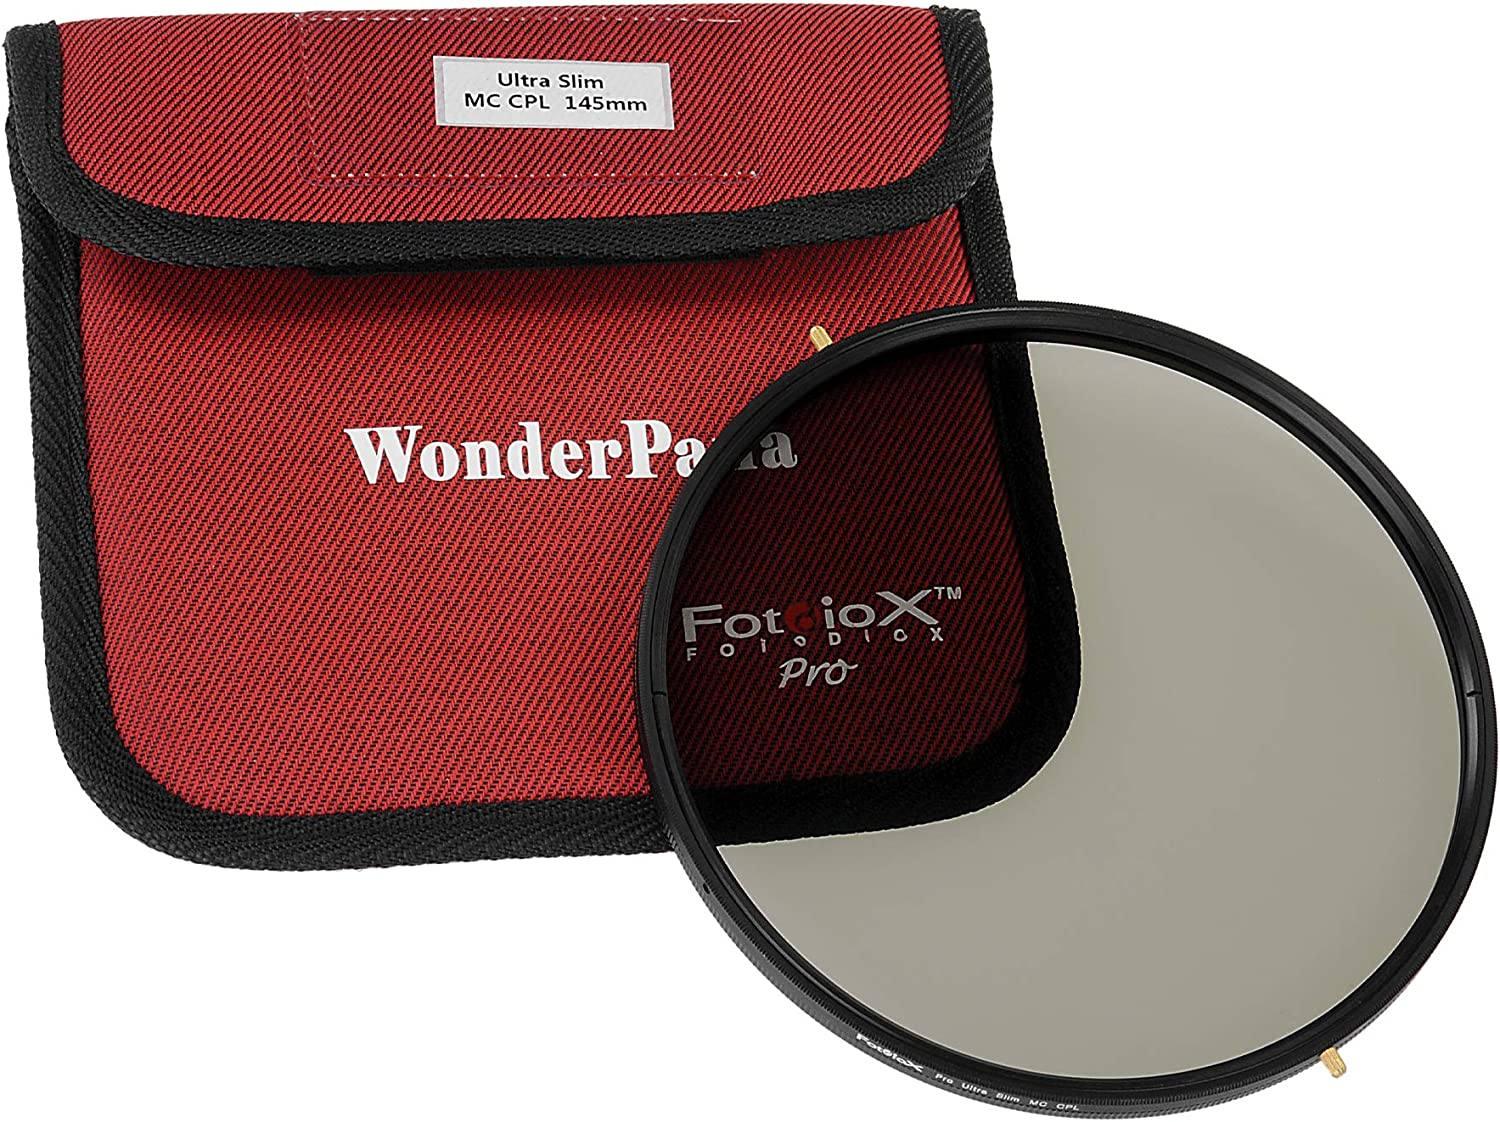 Kit Compatible with Fujifilm XF 8-16mm f//2.8 R LM WR Lens WonderPana FreeArc 145mm Multi-Coated CPL MC-CPL